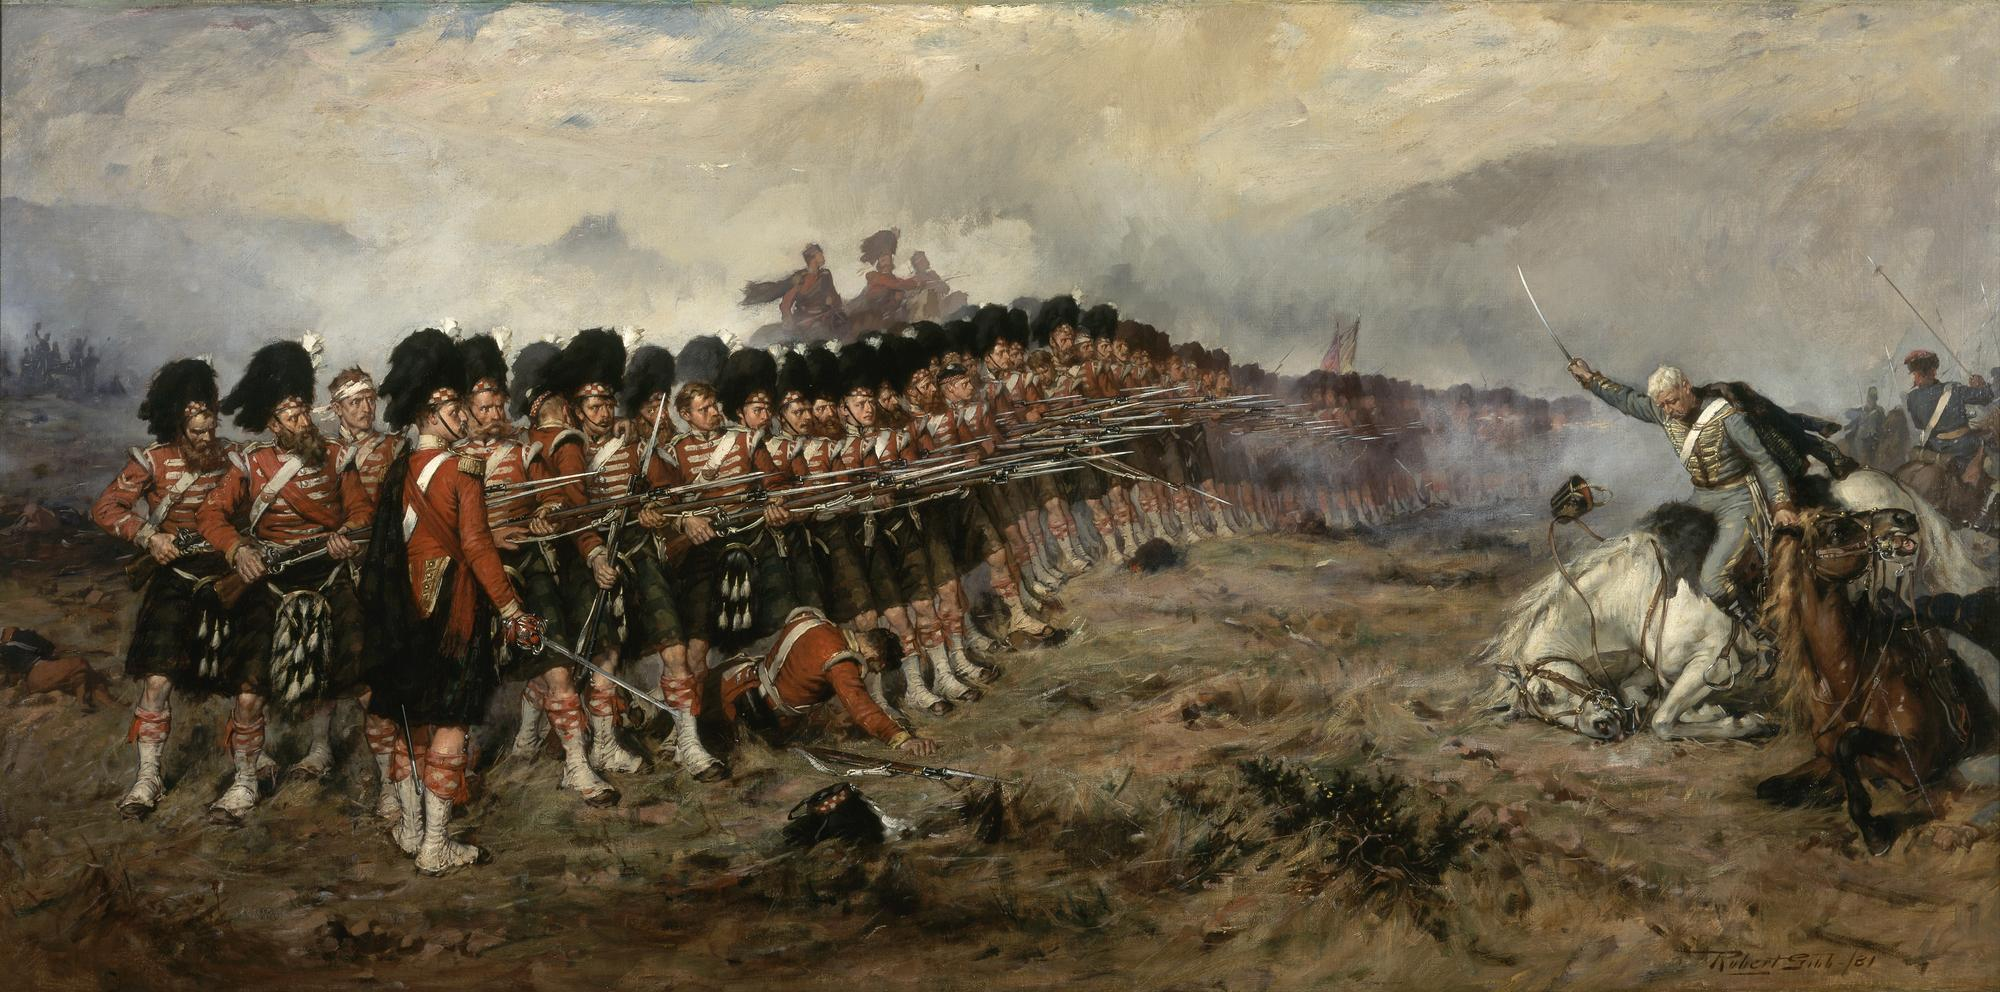 Robert Gibb – The Thin Red Line (1881). Paintings like this reflected the cult of the Highland soldier as an imperturbable hero, capable of undergoing extraordinary pain without complaint.(Wikicommons.)